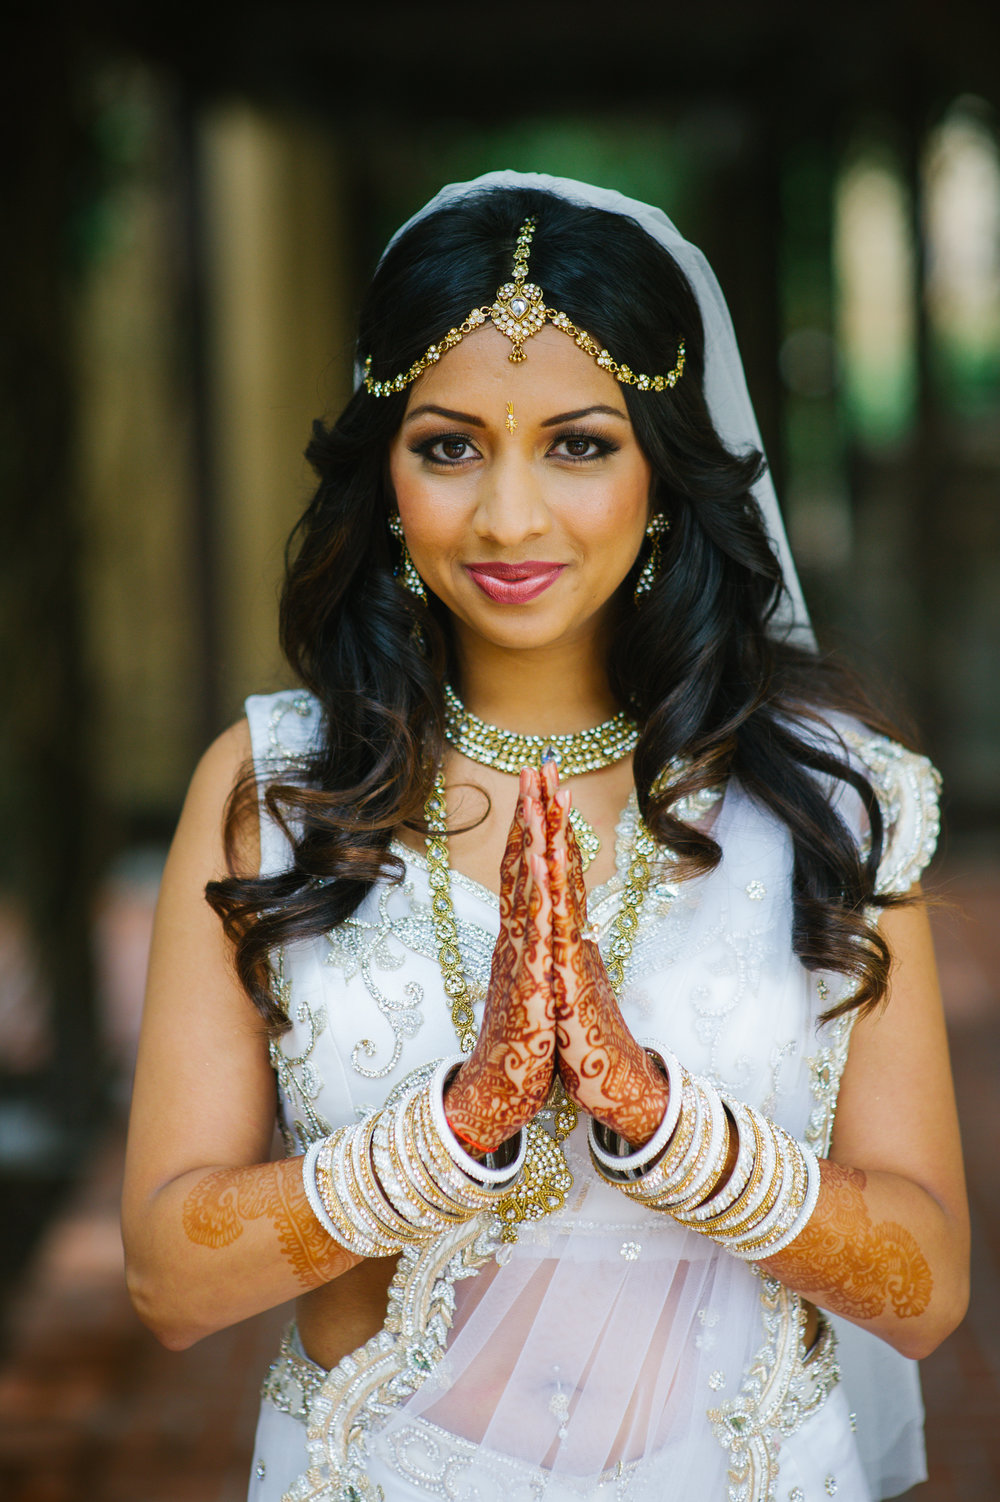 JKP_Indian_Weddings_0132.JPG